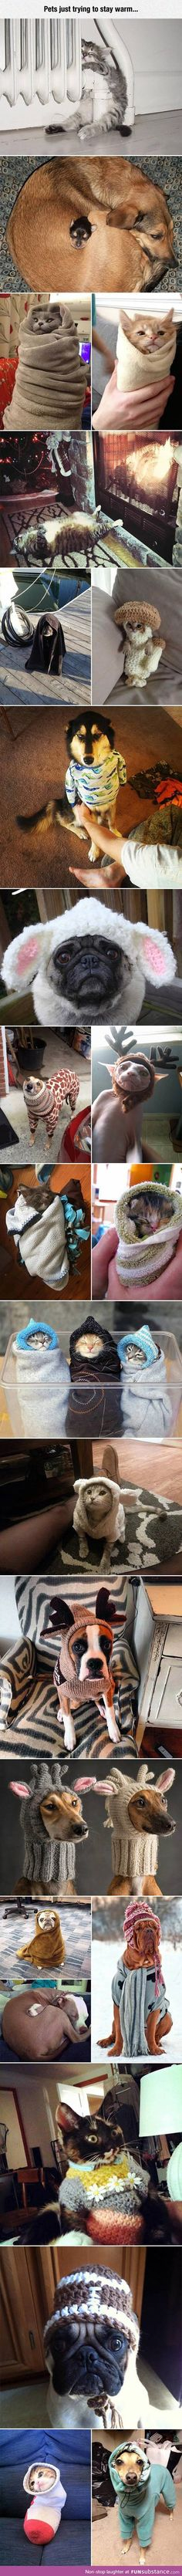 Pets trying their best to stay warm